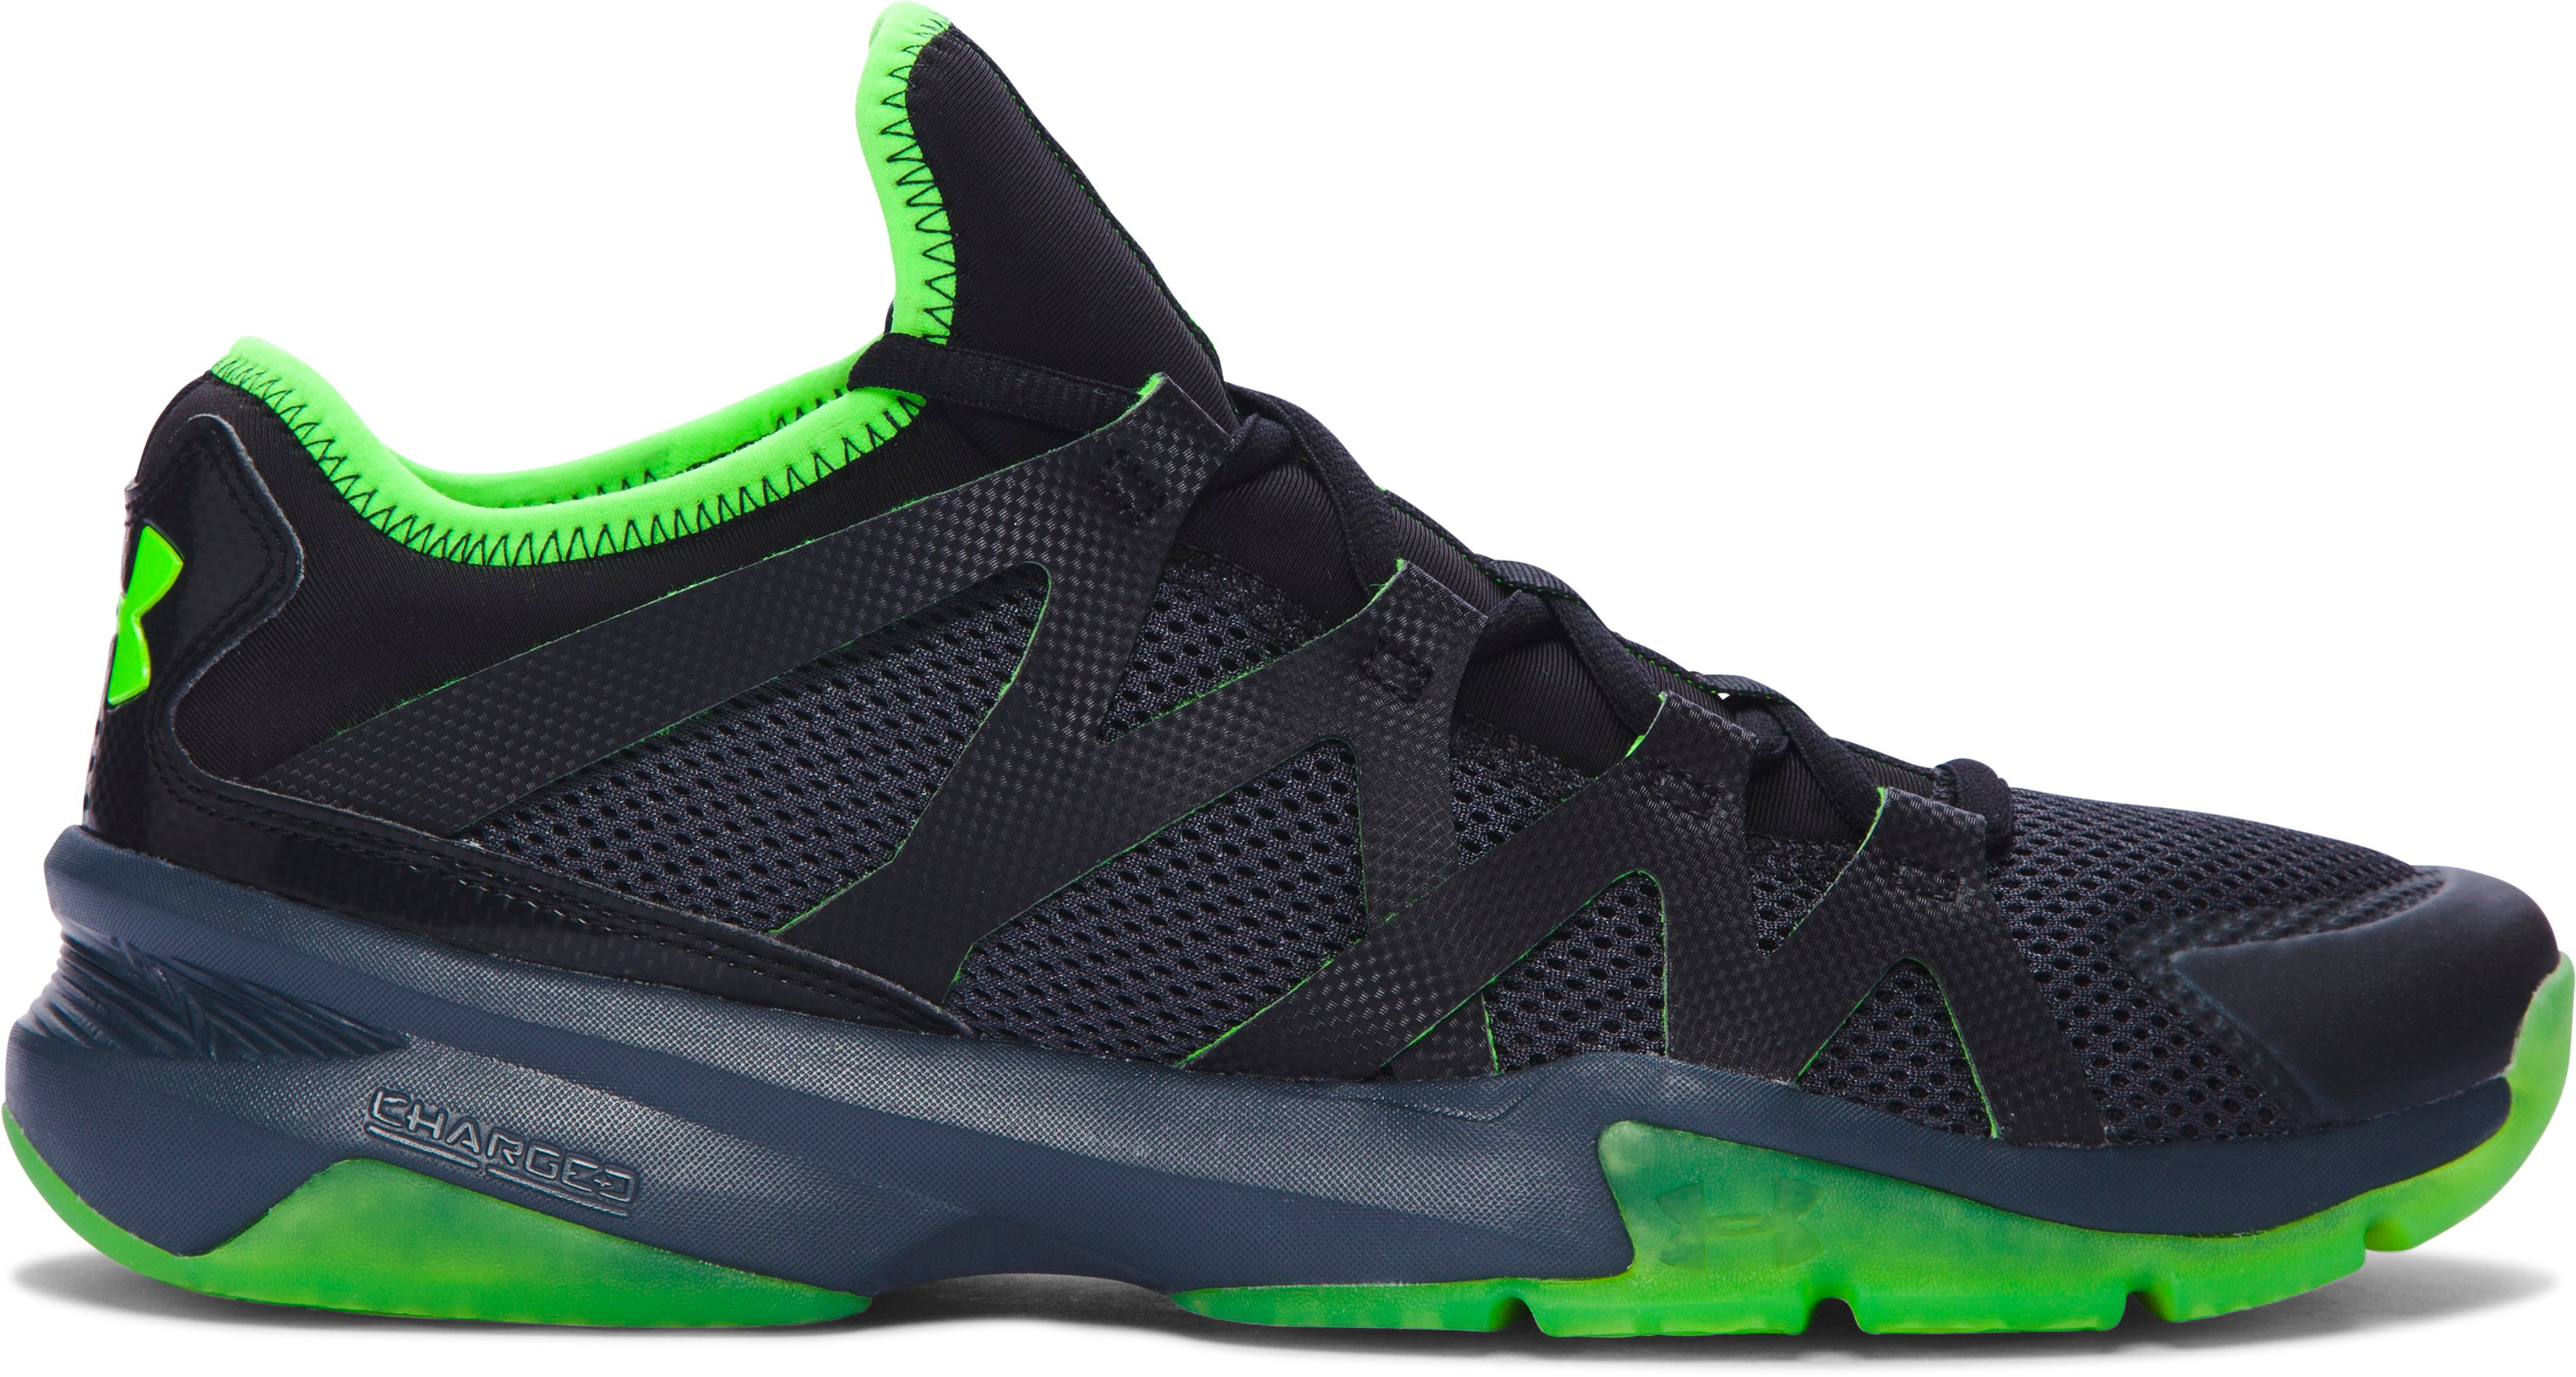 Zapatillas de Training UA Charged Phenom 2 para Hombre, 360 degree view